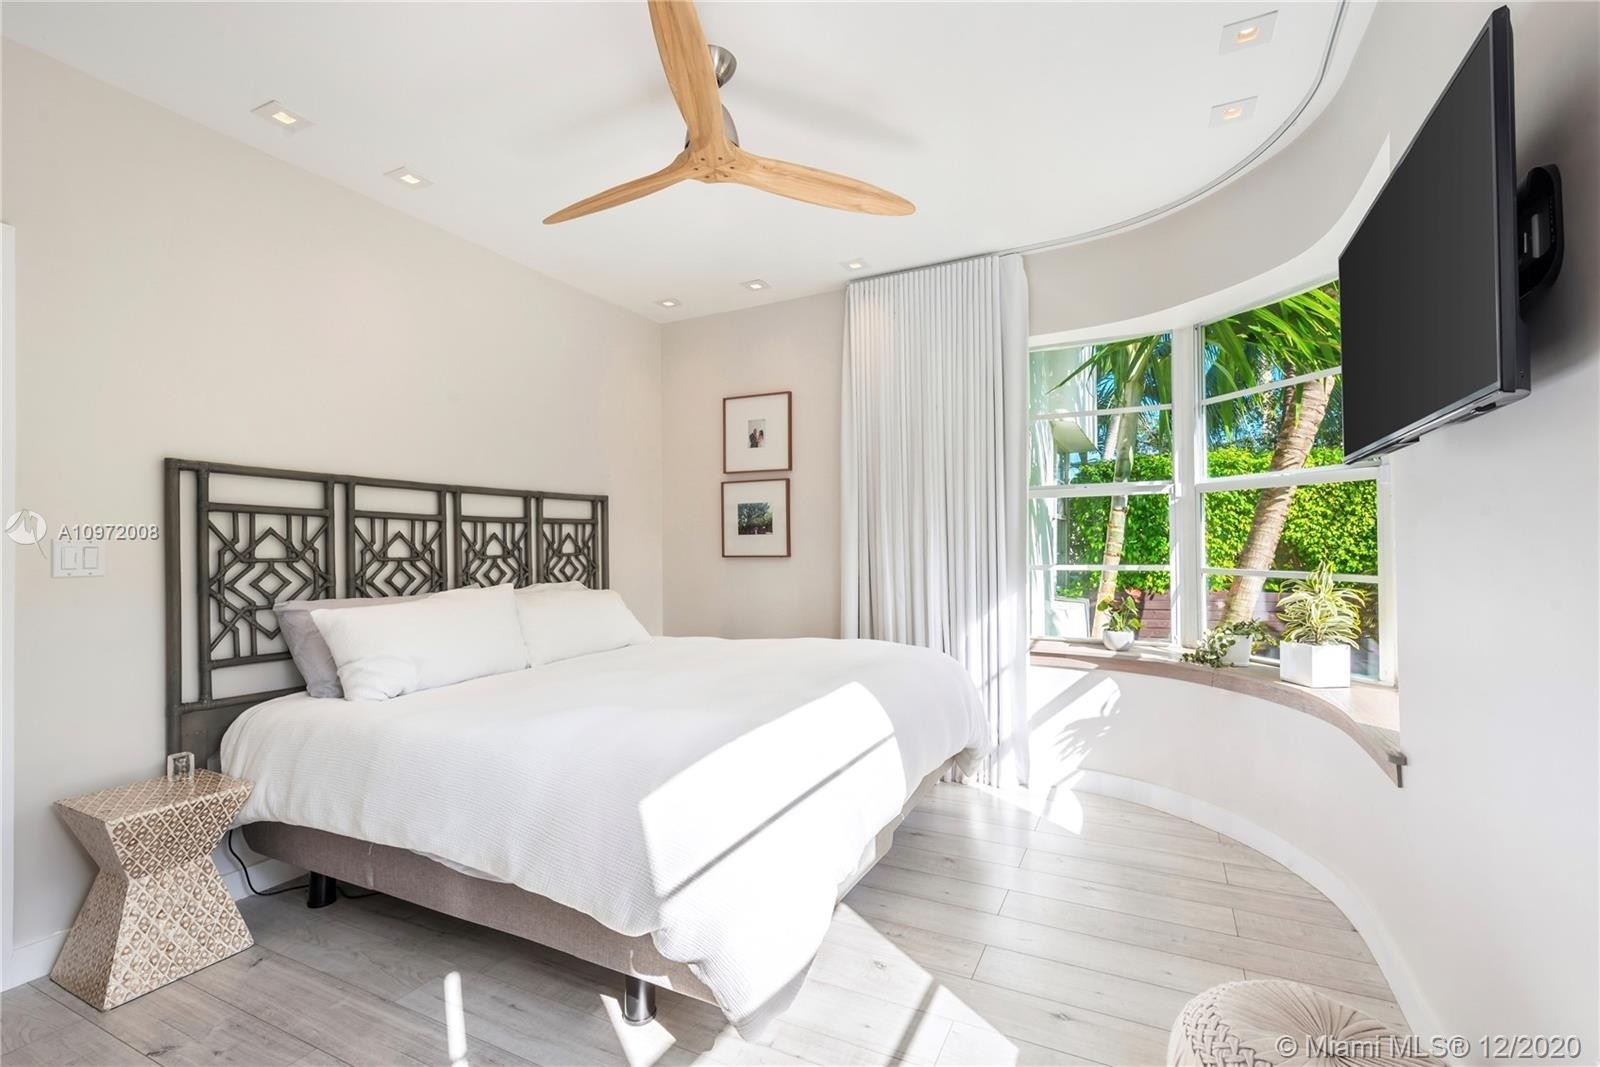 5. Condominiums for Sale at 1435 West Ave , 1 South Beach, Miami Beach, FL 33139